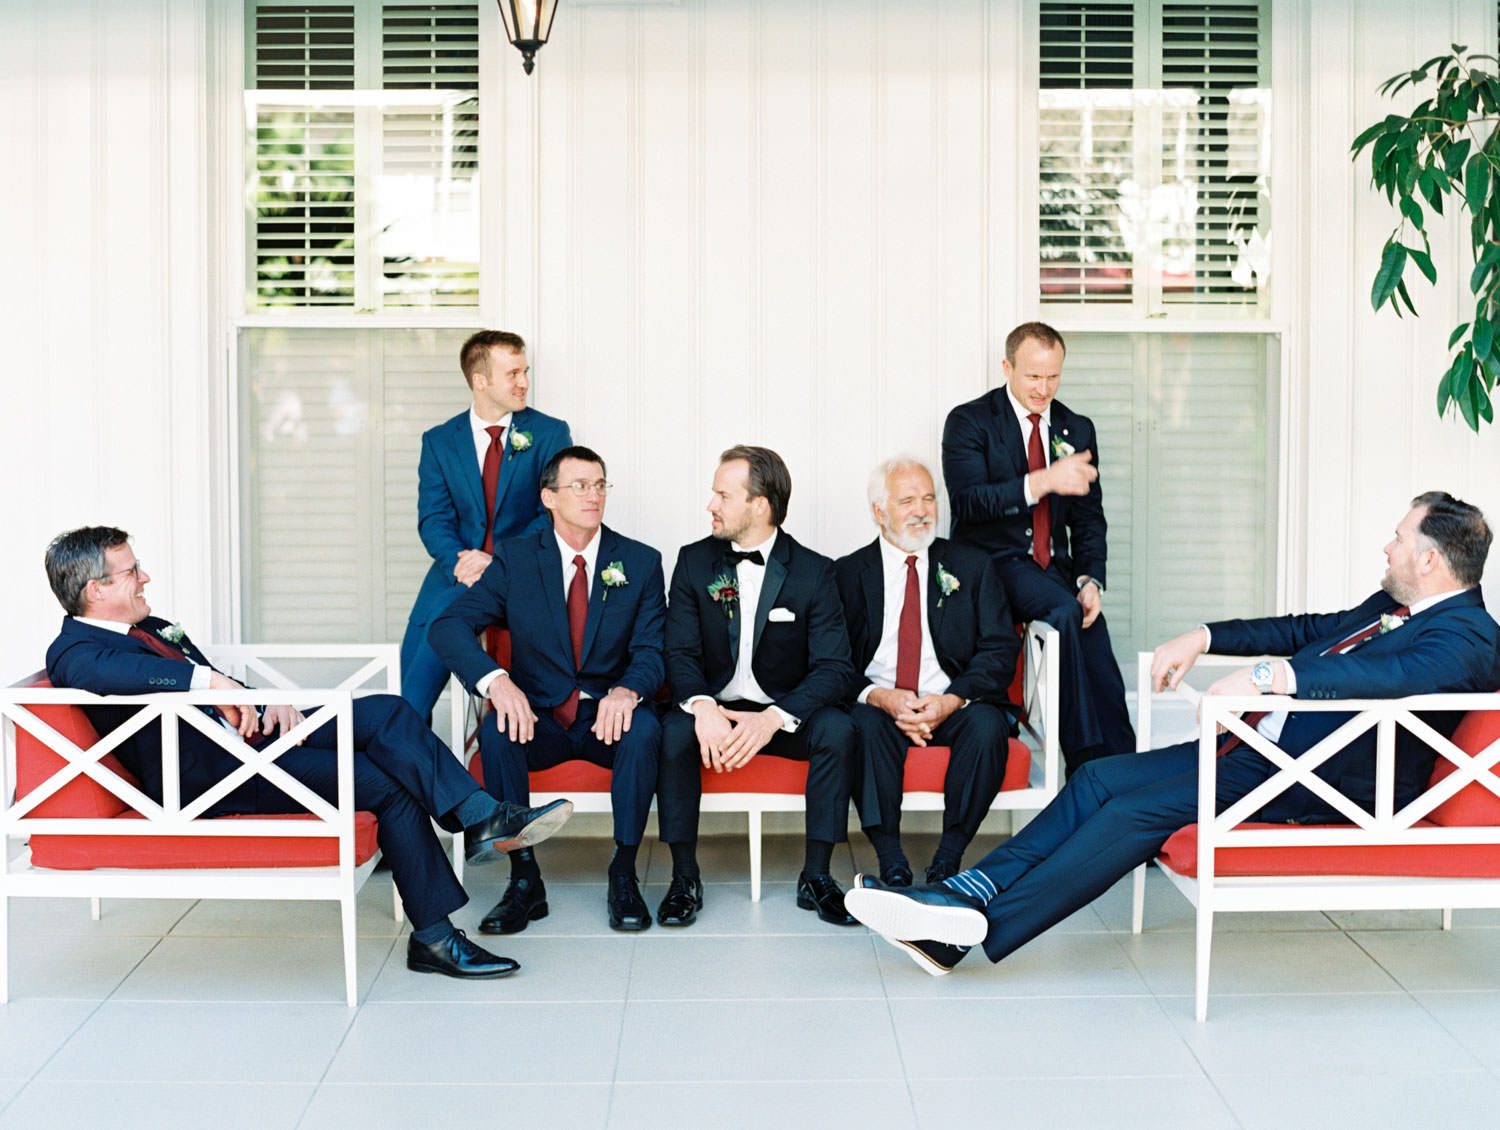 Groom in black tuxedo and groomsmen in navy suits with burgundy ties hanging out on red and white chairs at the Hotel Del. Cavin Elizabeth Photography.